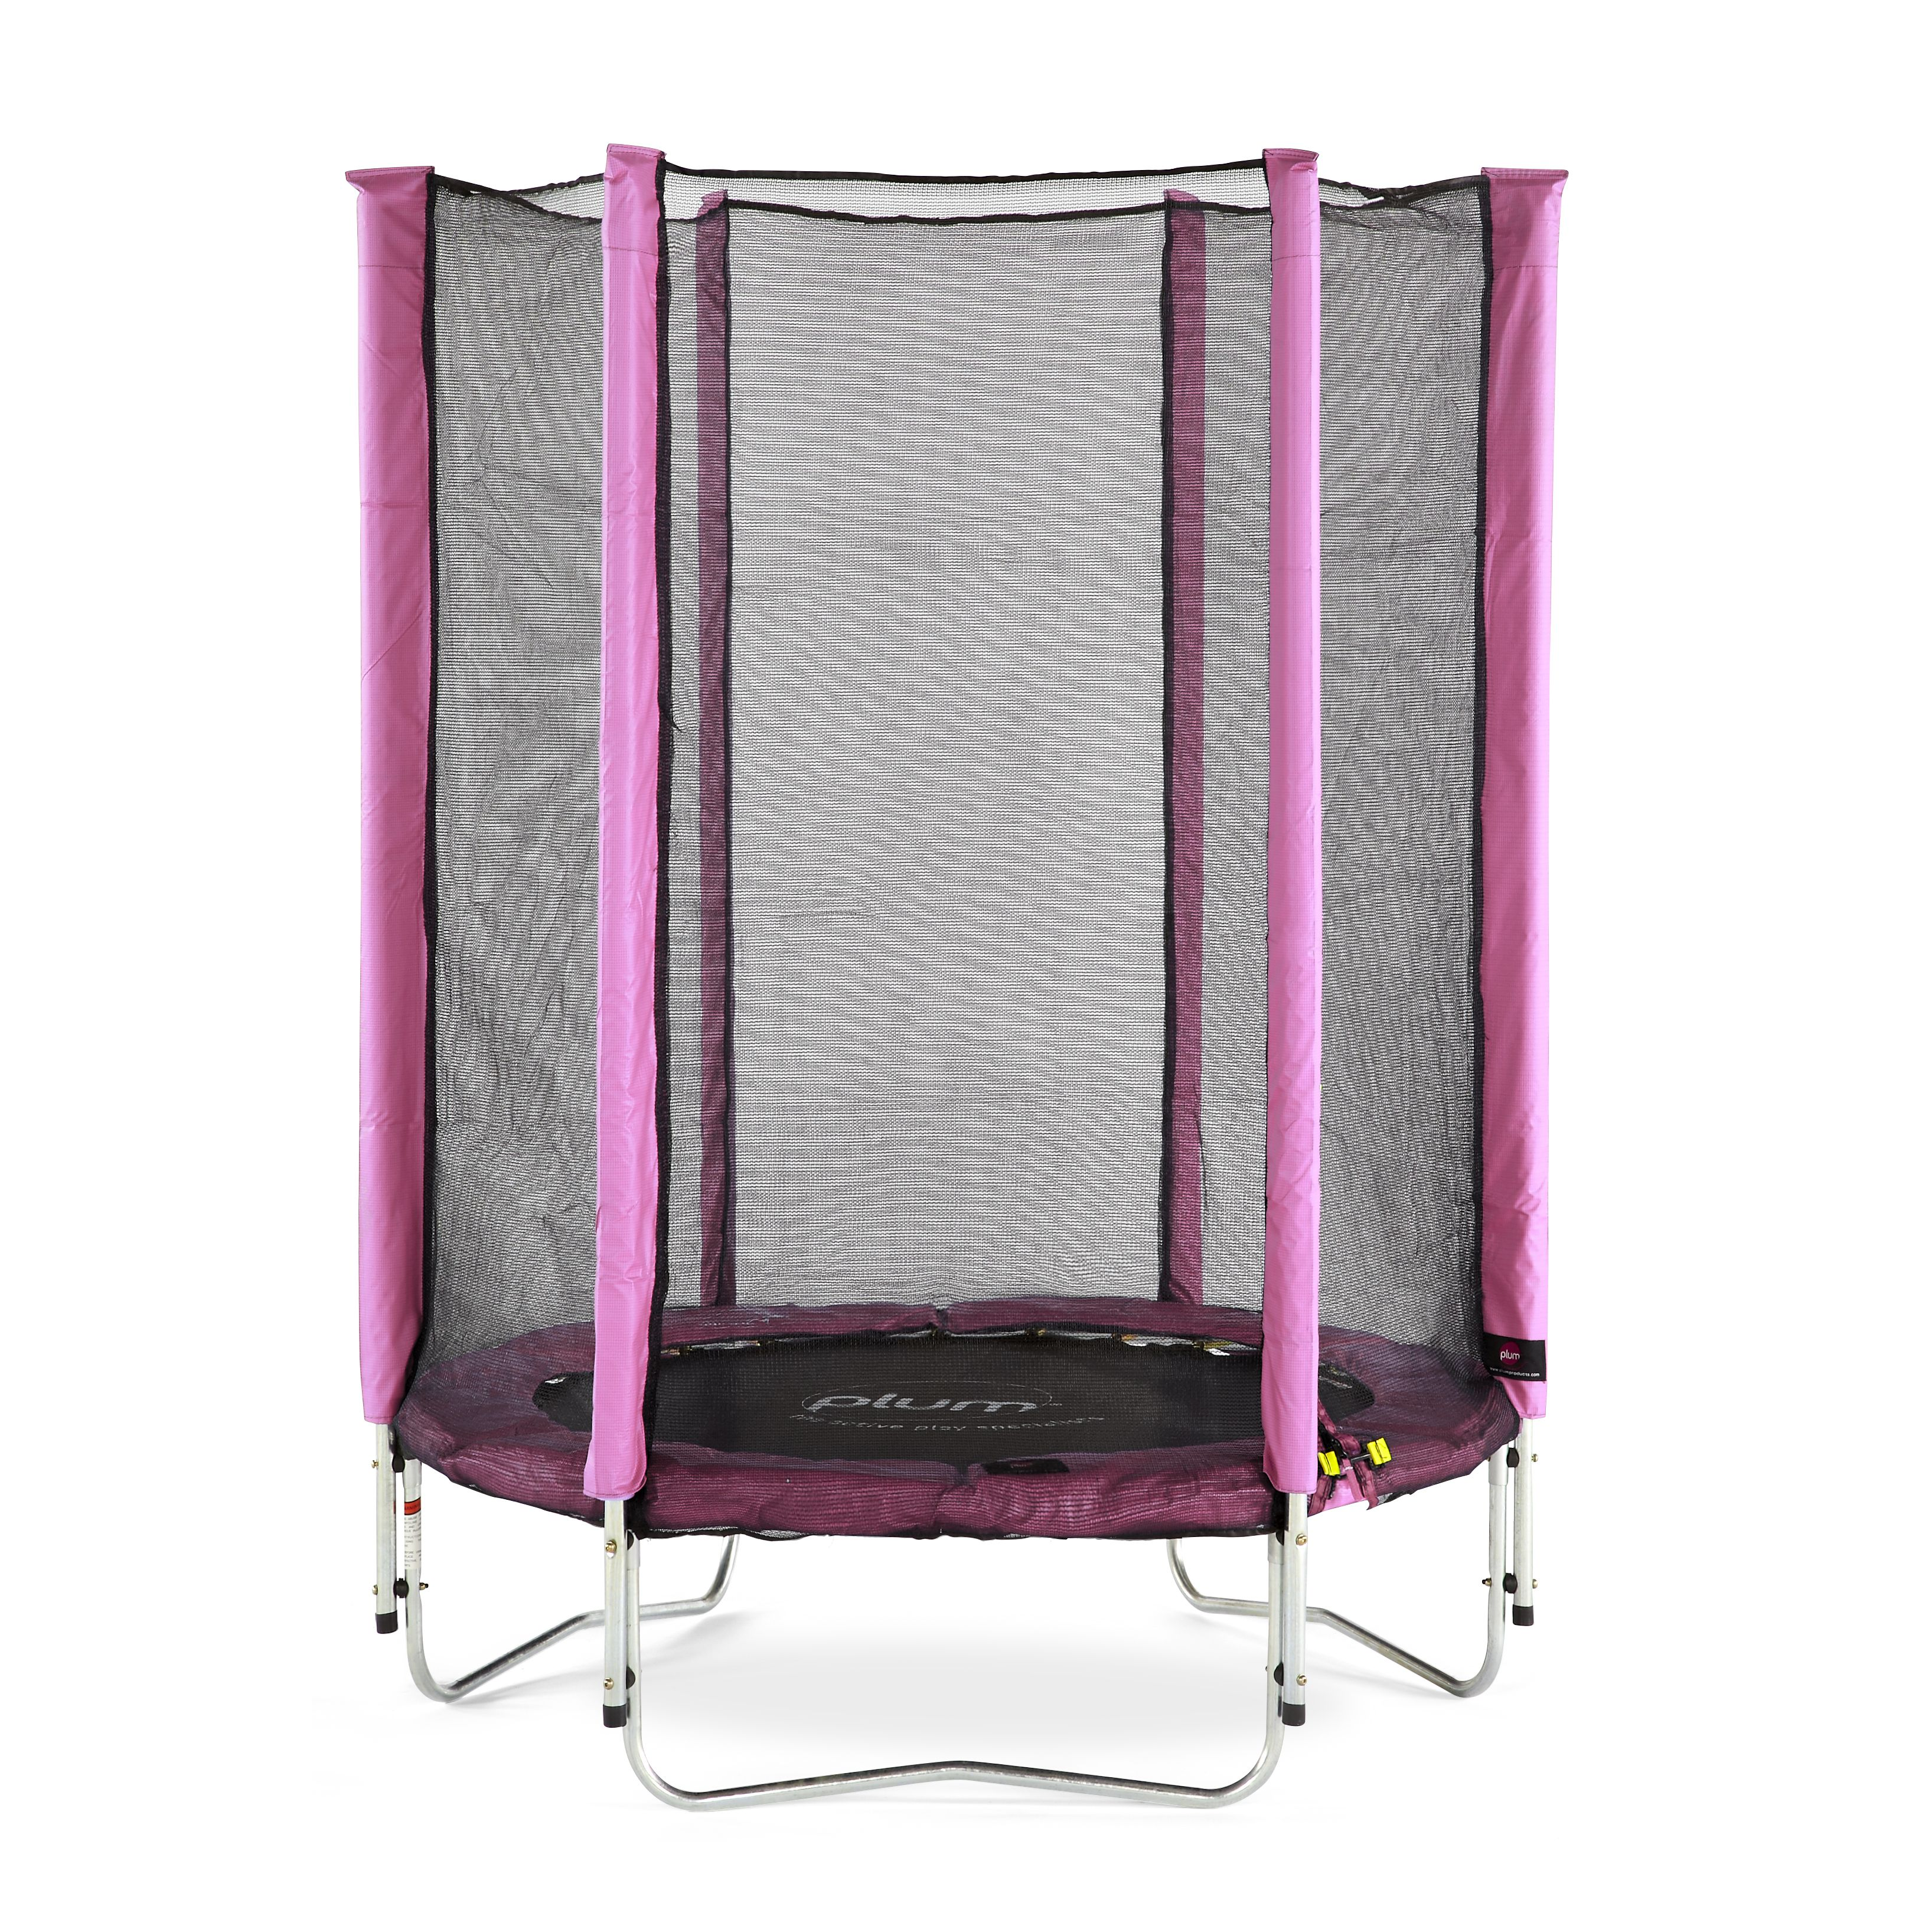 Trampoline Springs B Q: Plum Junior Pink 4.5 Ft Trampoline & Enclosure